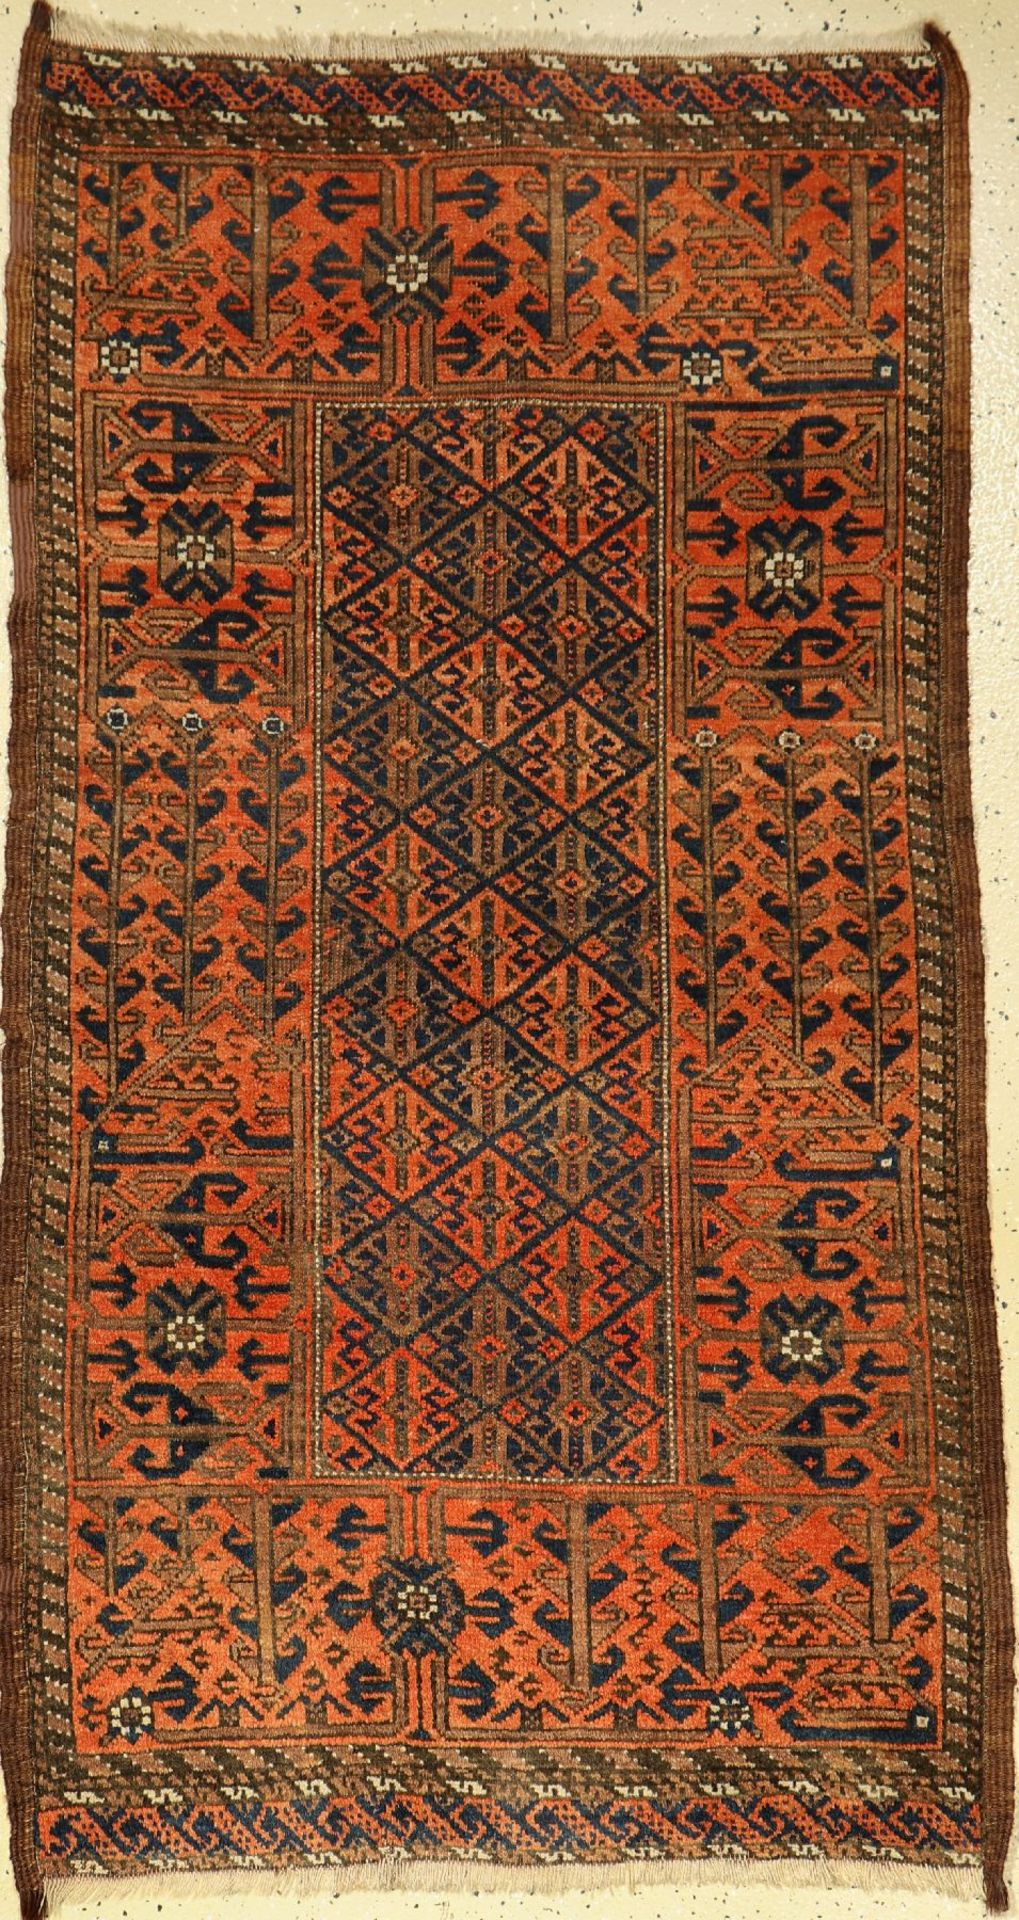 Baluch old, Persia, around 1920, wool on wool,approx. 150 x 83 cm, condition: 2-3. Auction: Antique,